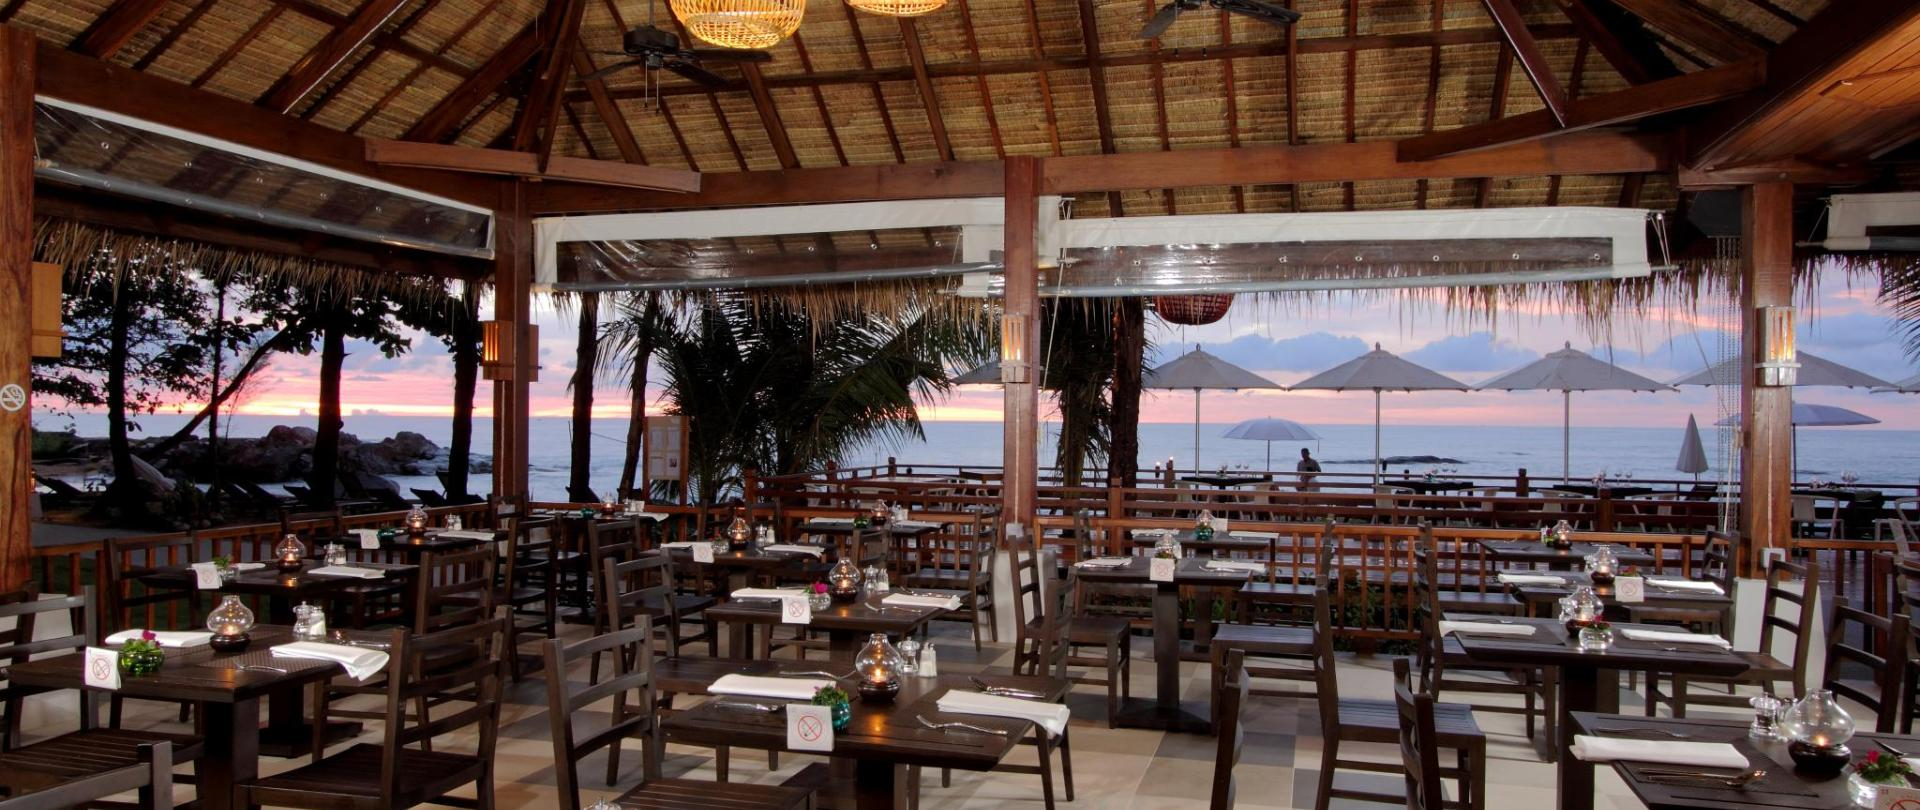 186_The Beach Restaurant_001.JPG